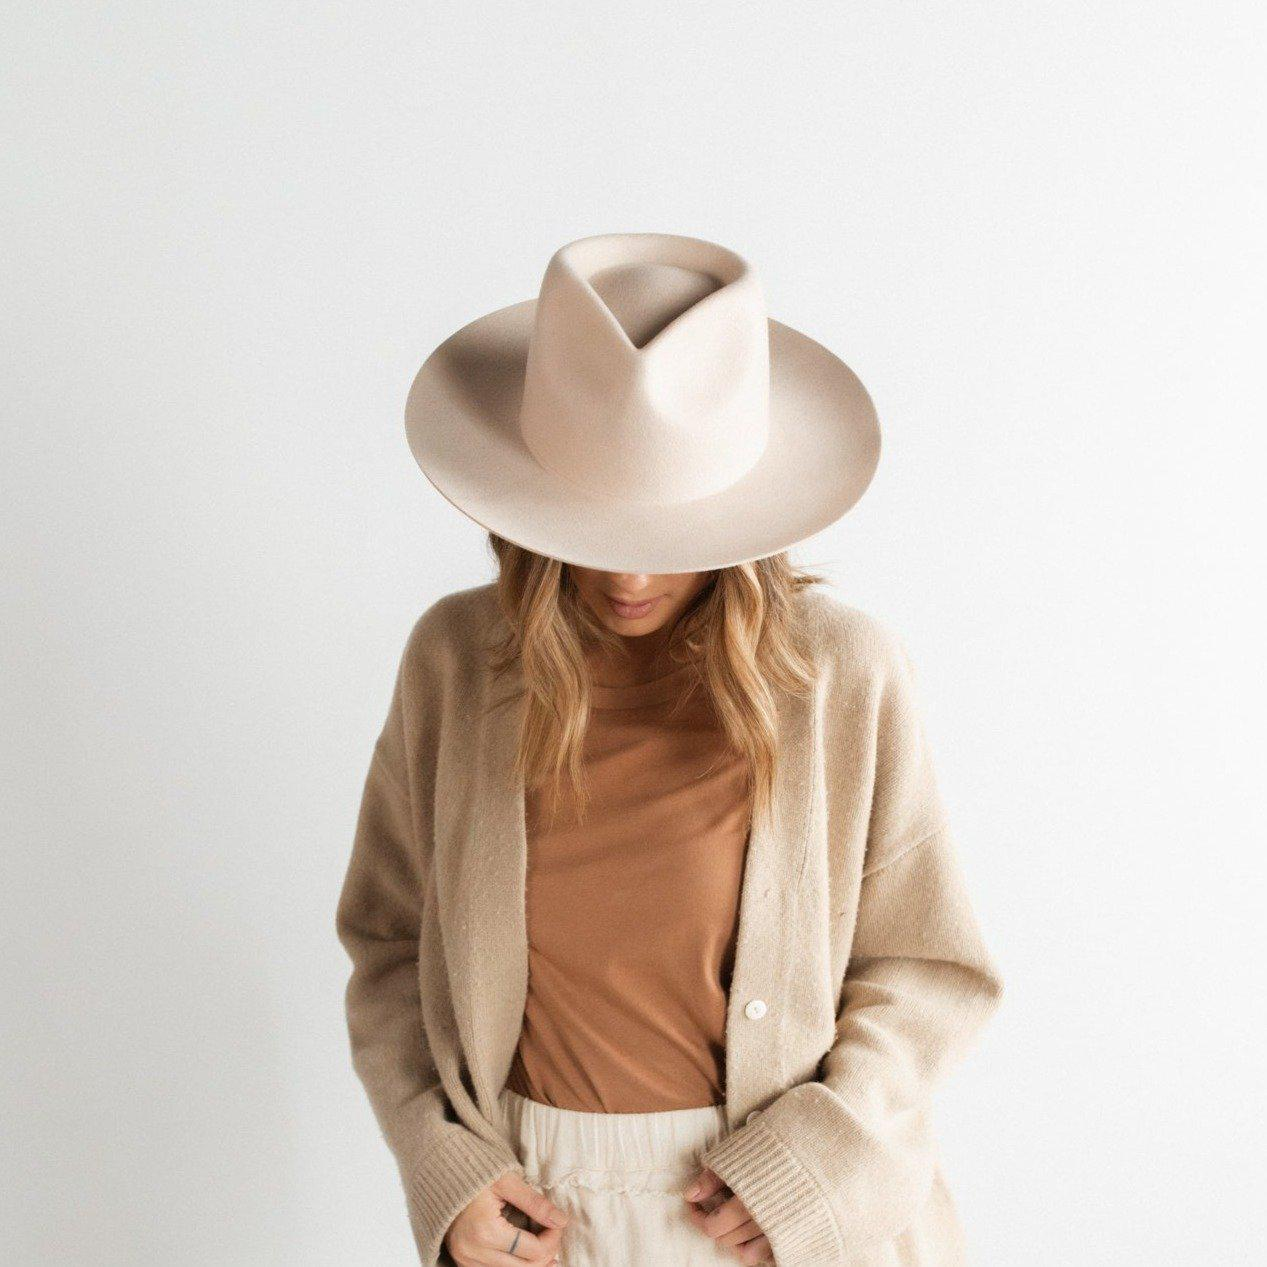 GIGI PIP Hats for Women- Zephyr Rancher - Cream-Felt Hats